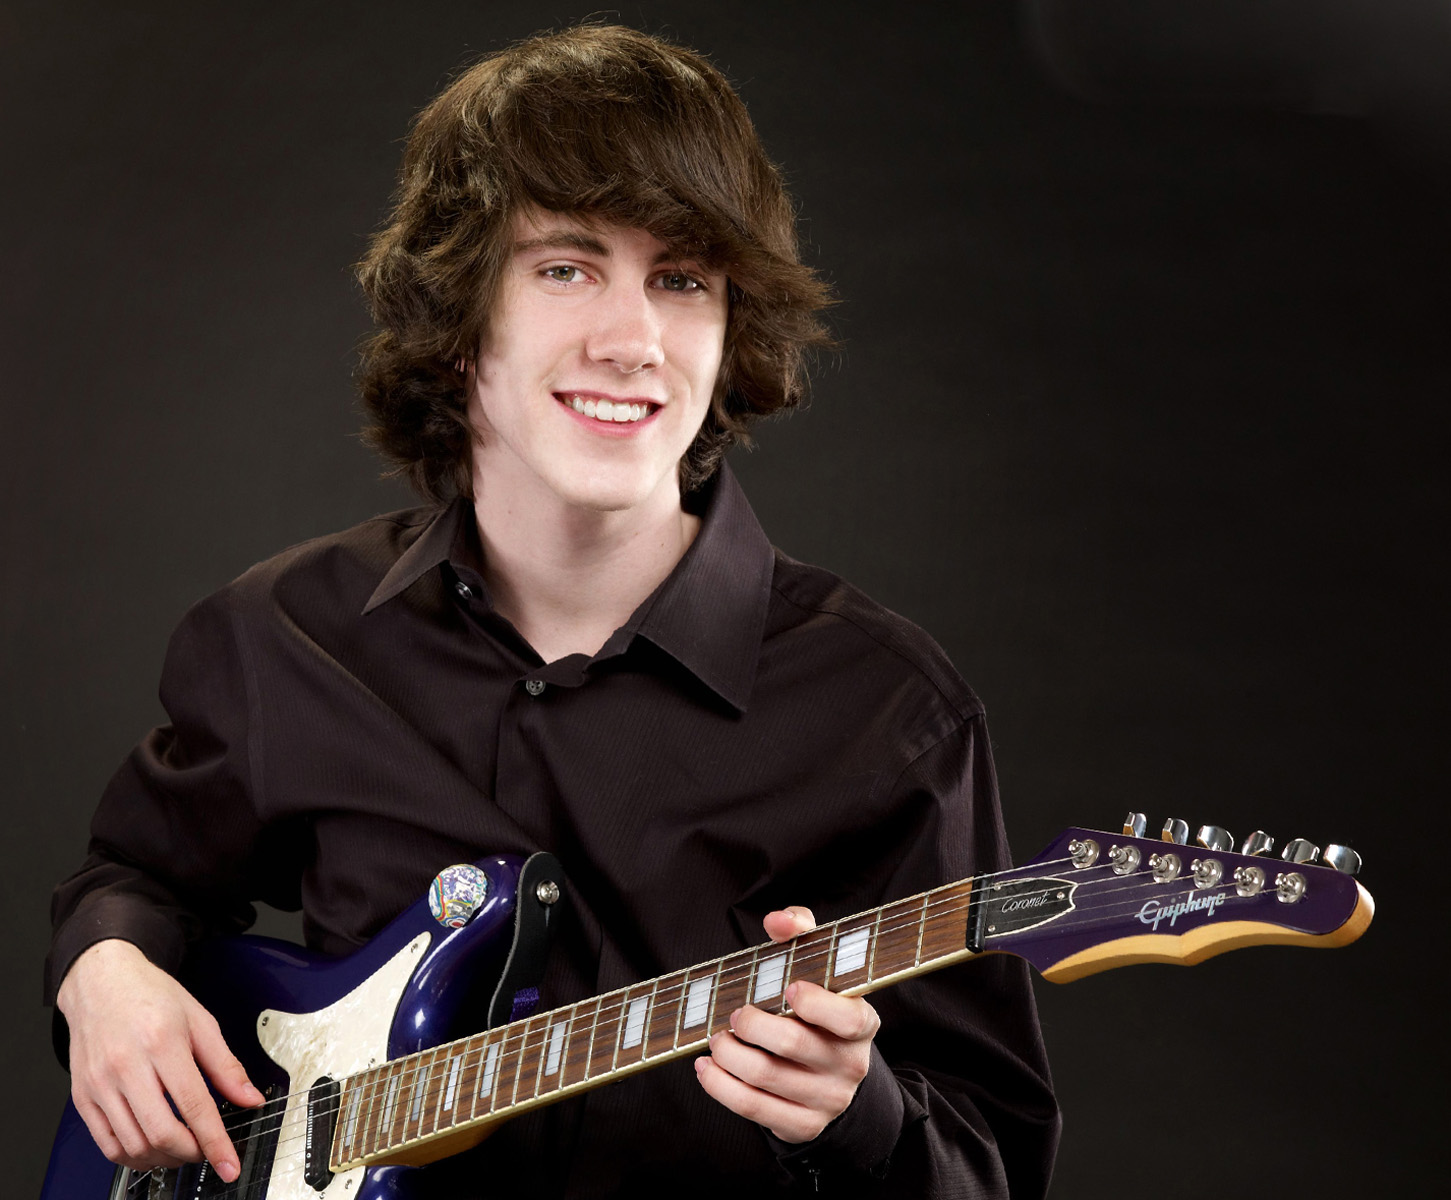 Senior Portrait with Guitar